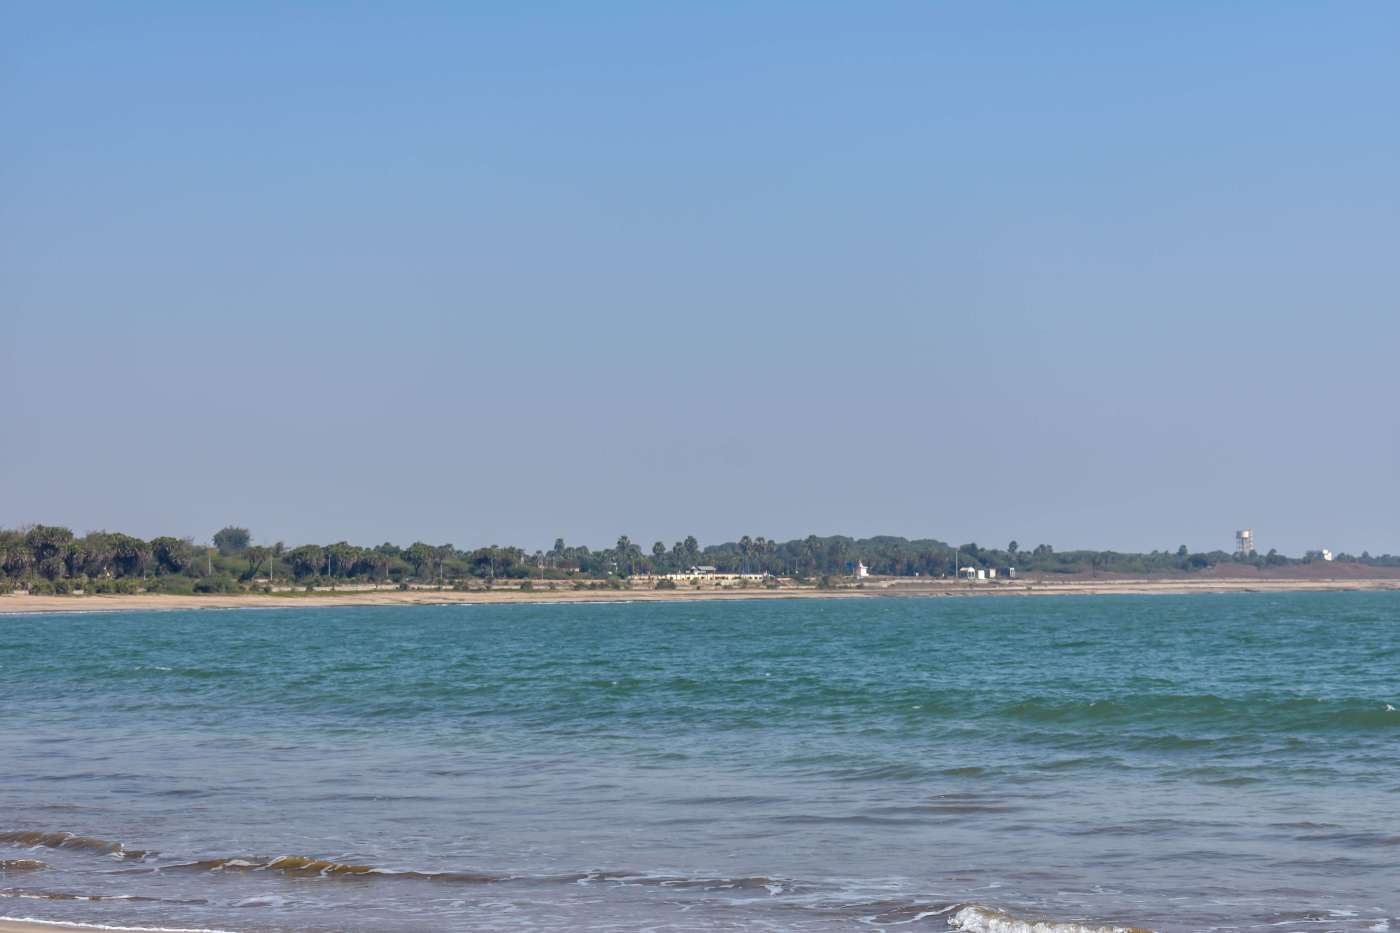 Nagoa beach | Places to visit in Diu | Places to see in Diu | Diu Travel Guide | What to do in Diu | What to see in Diu | Diu Travel | #diu #gujarat #india